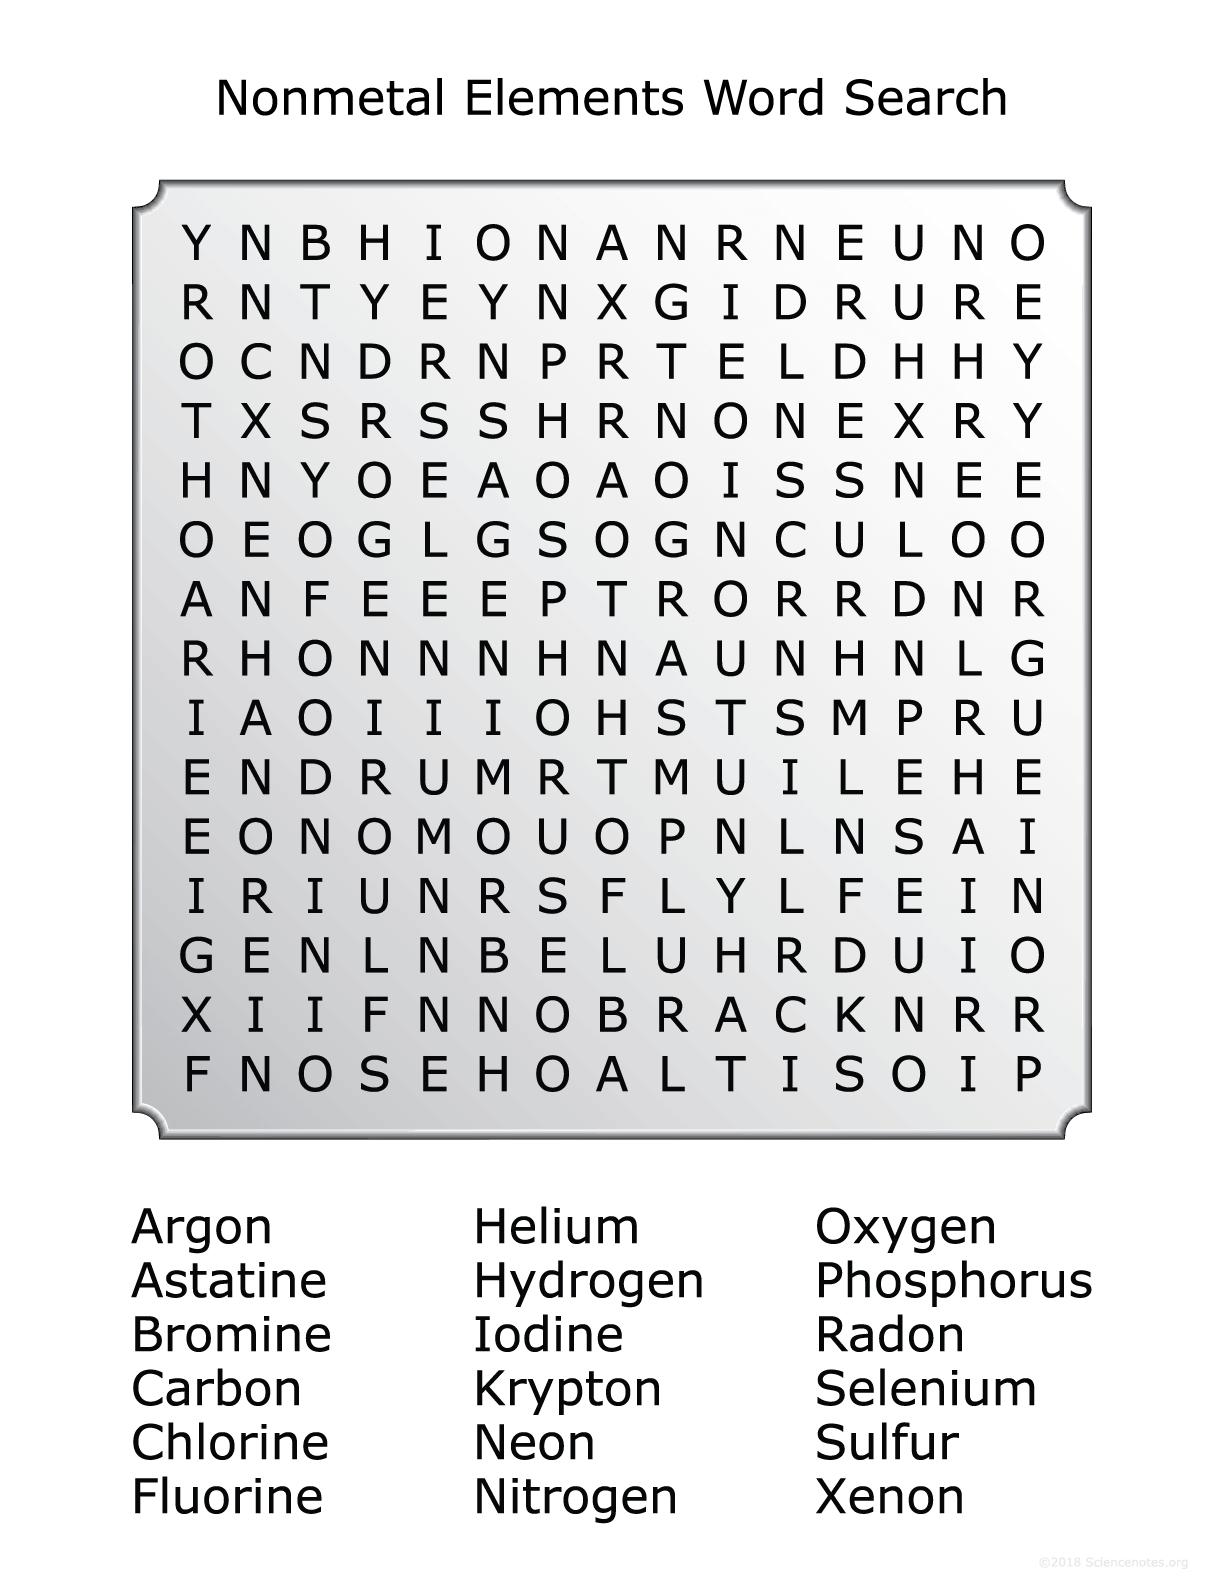 Elements Of The Periodic Table Word Search